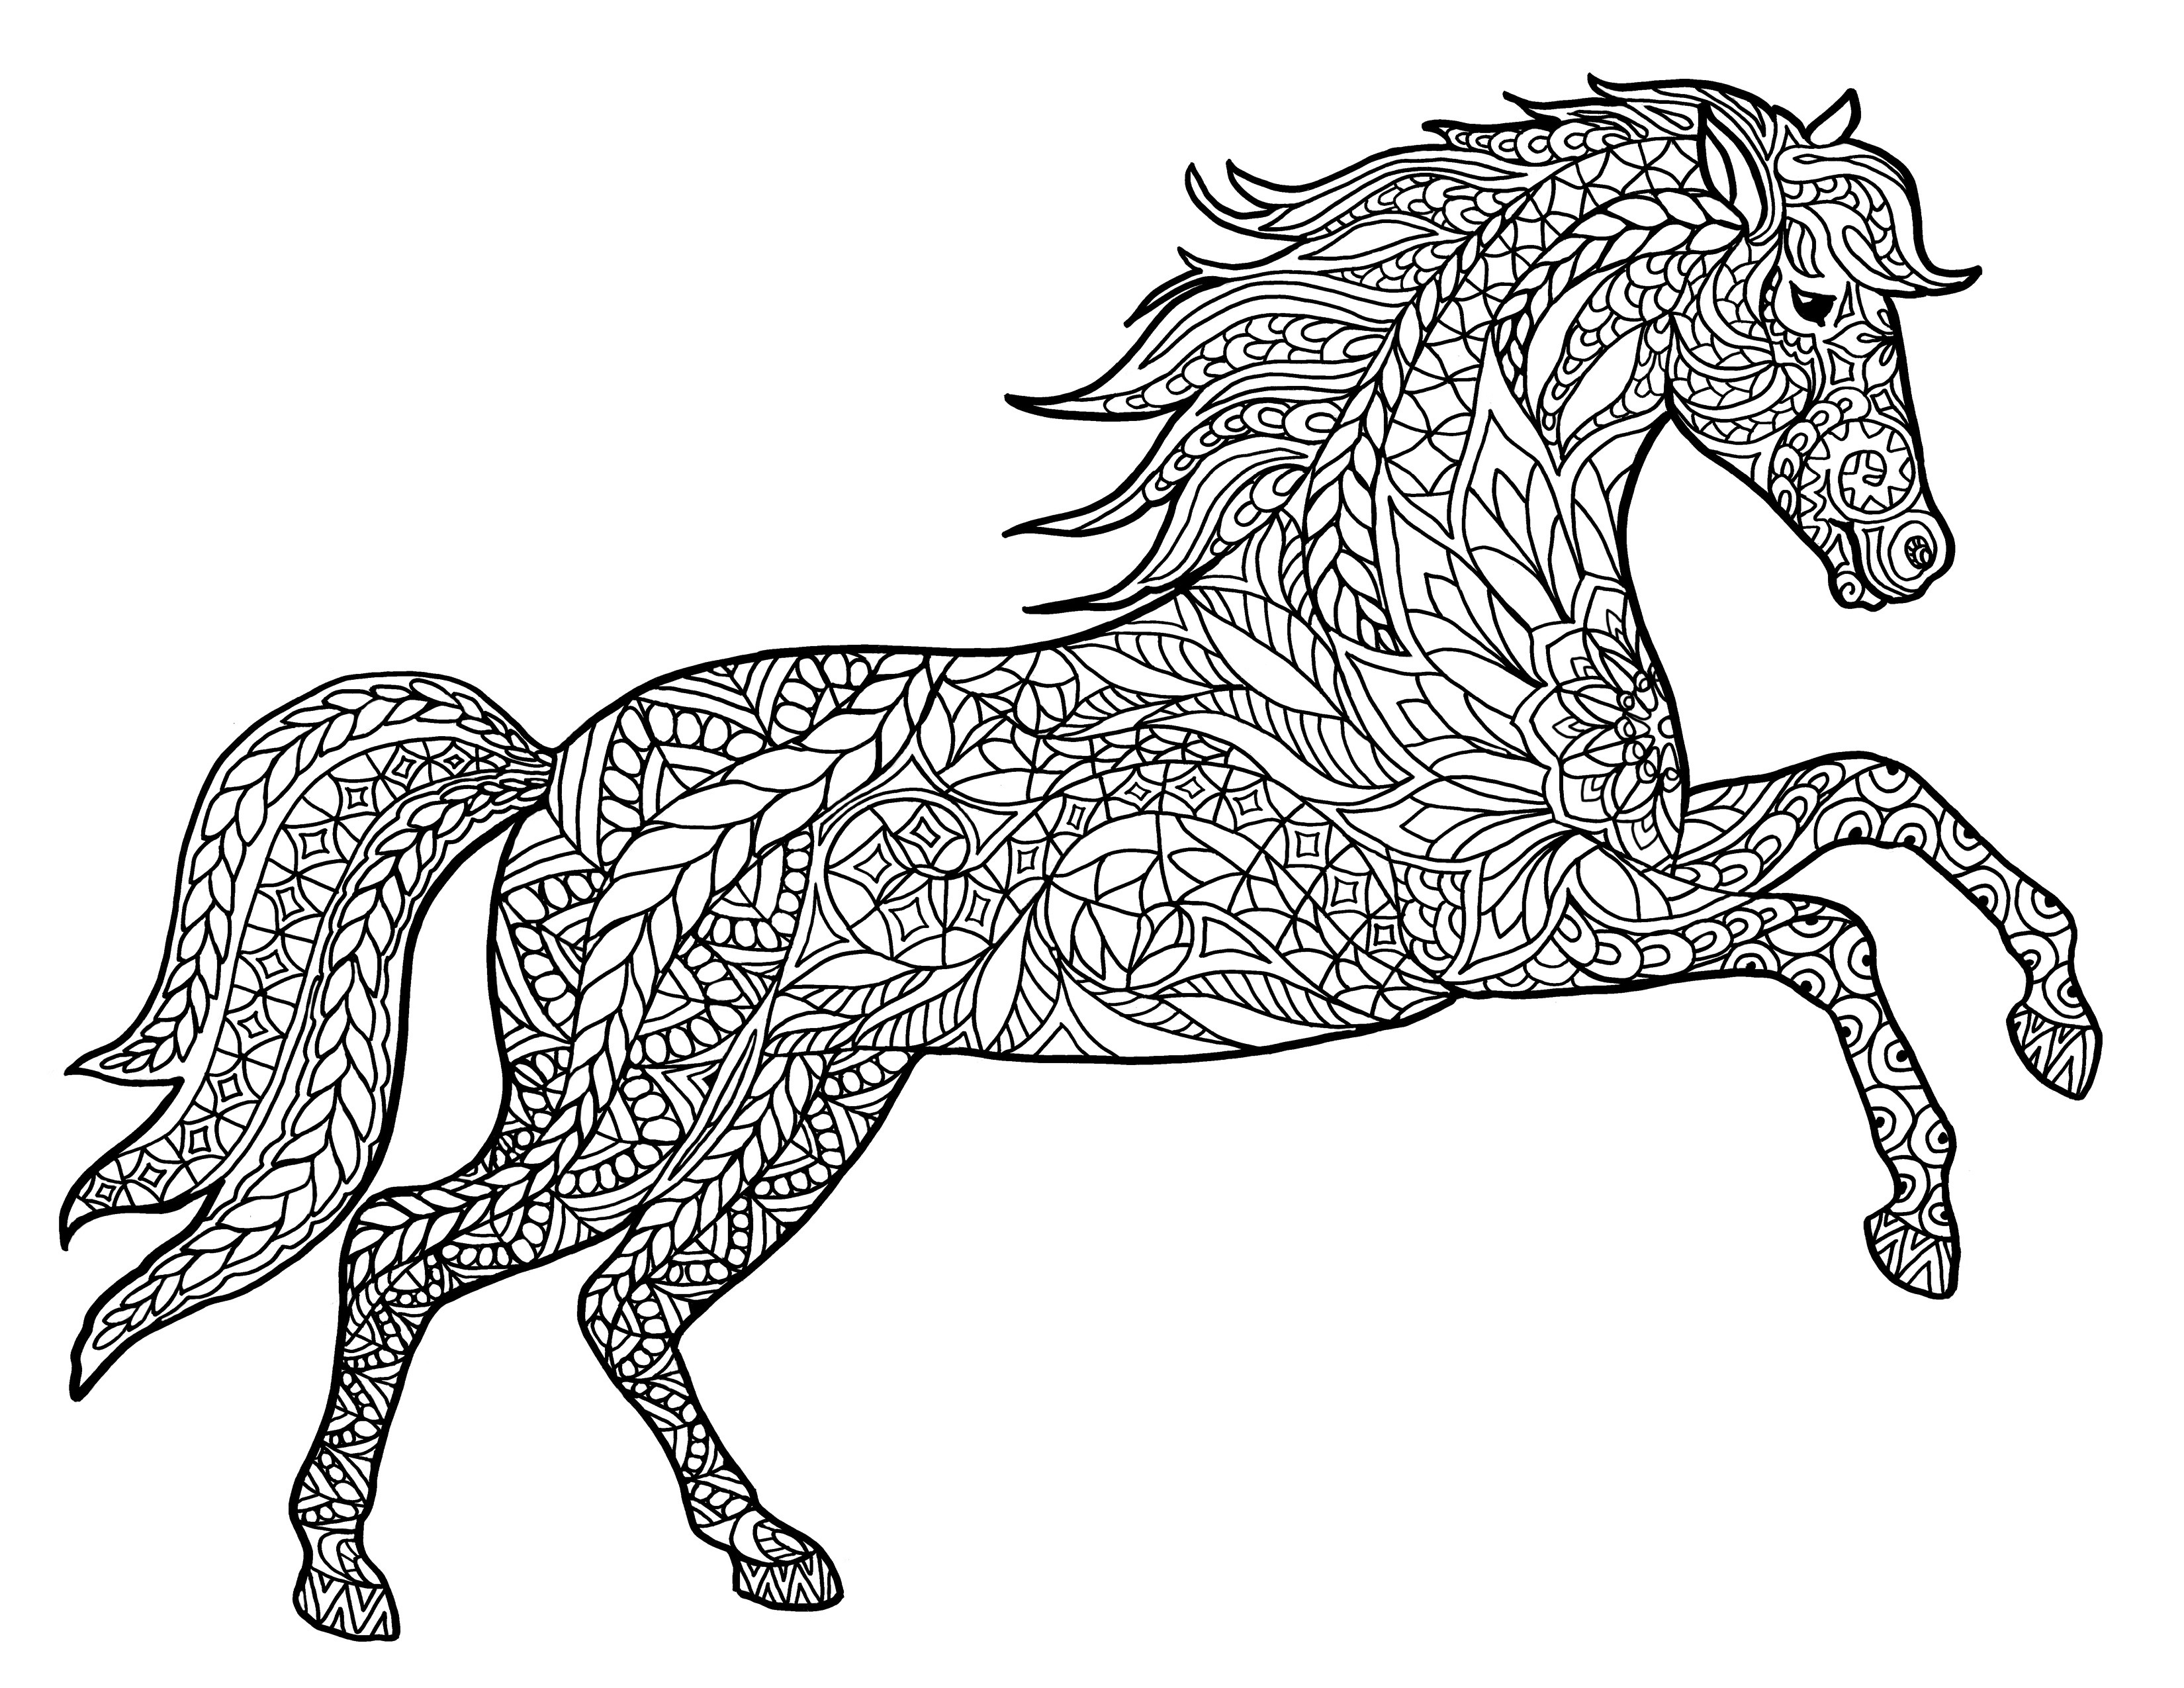 Adult Horse Coloring Pages  Animal Coloring Pages for Adults Best Coloring Pages For